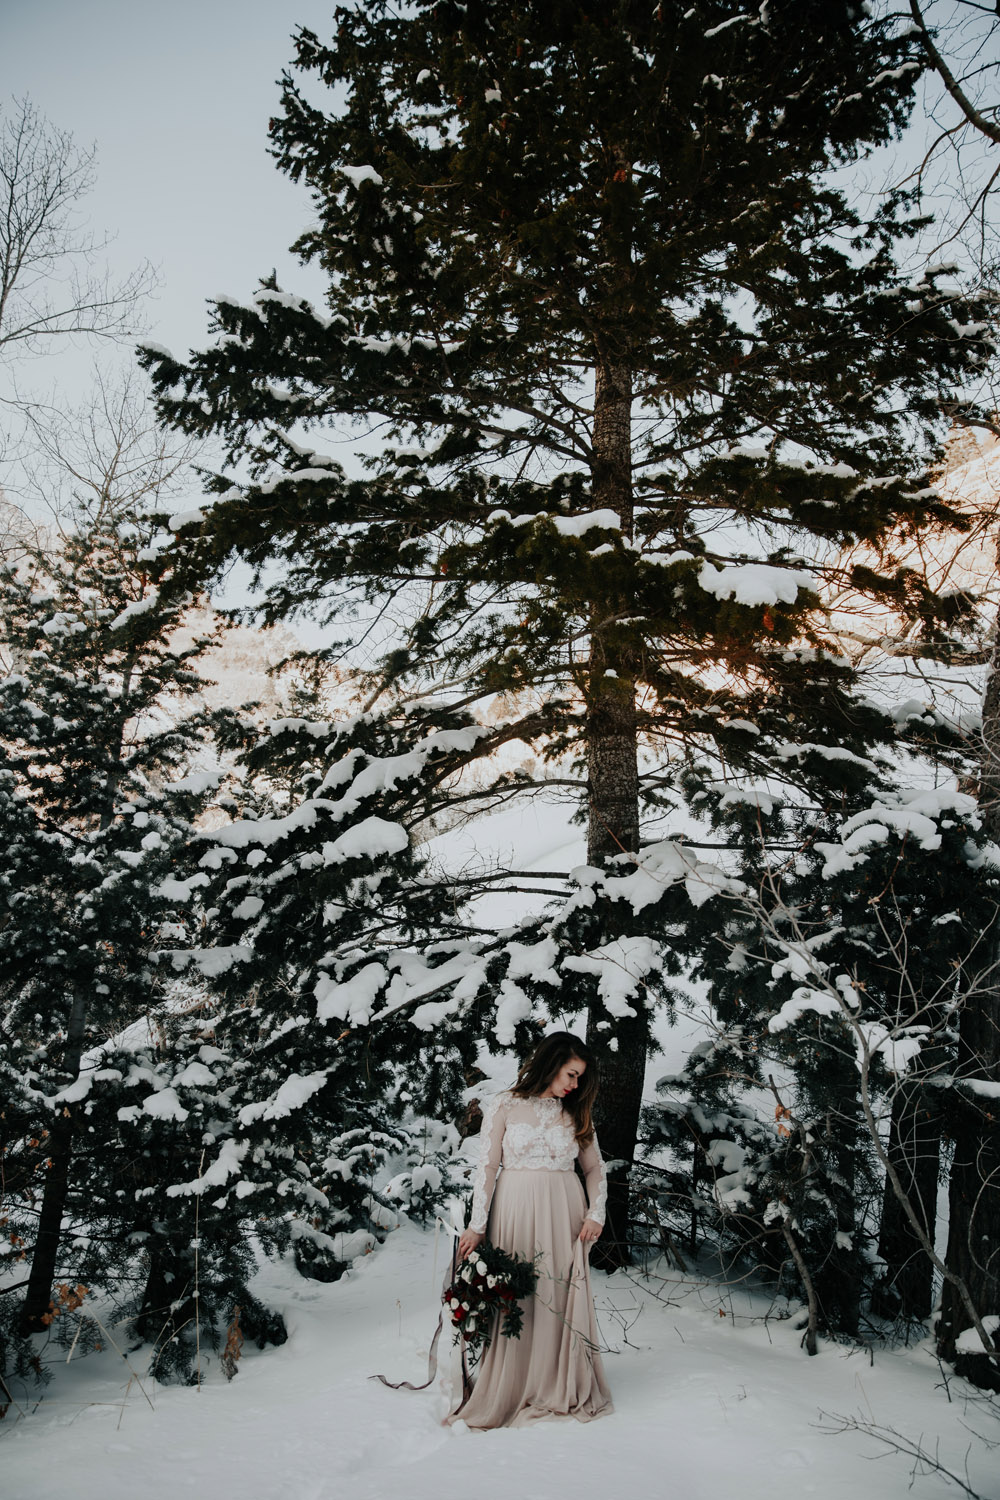 atalie ann photo destination wedding photographers elopement photographer engagement photography _1021.jpg